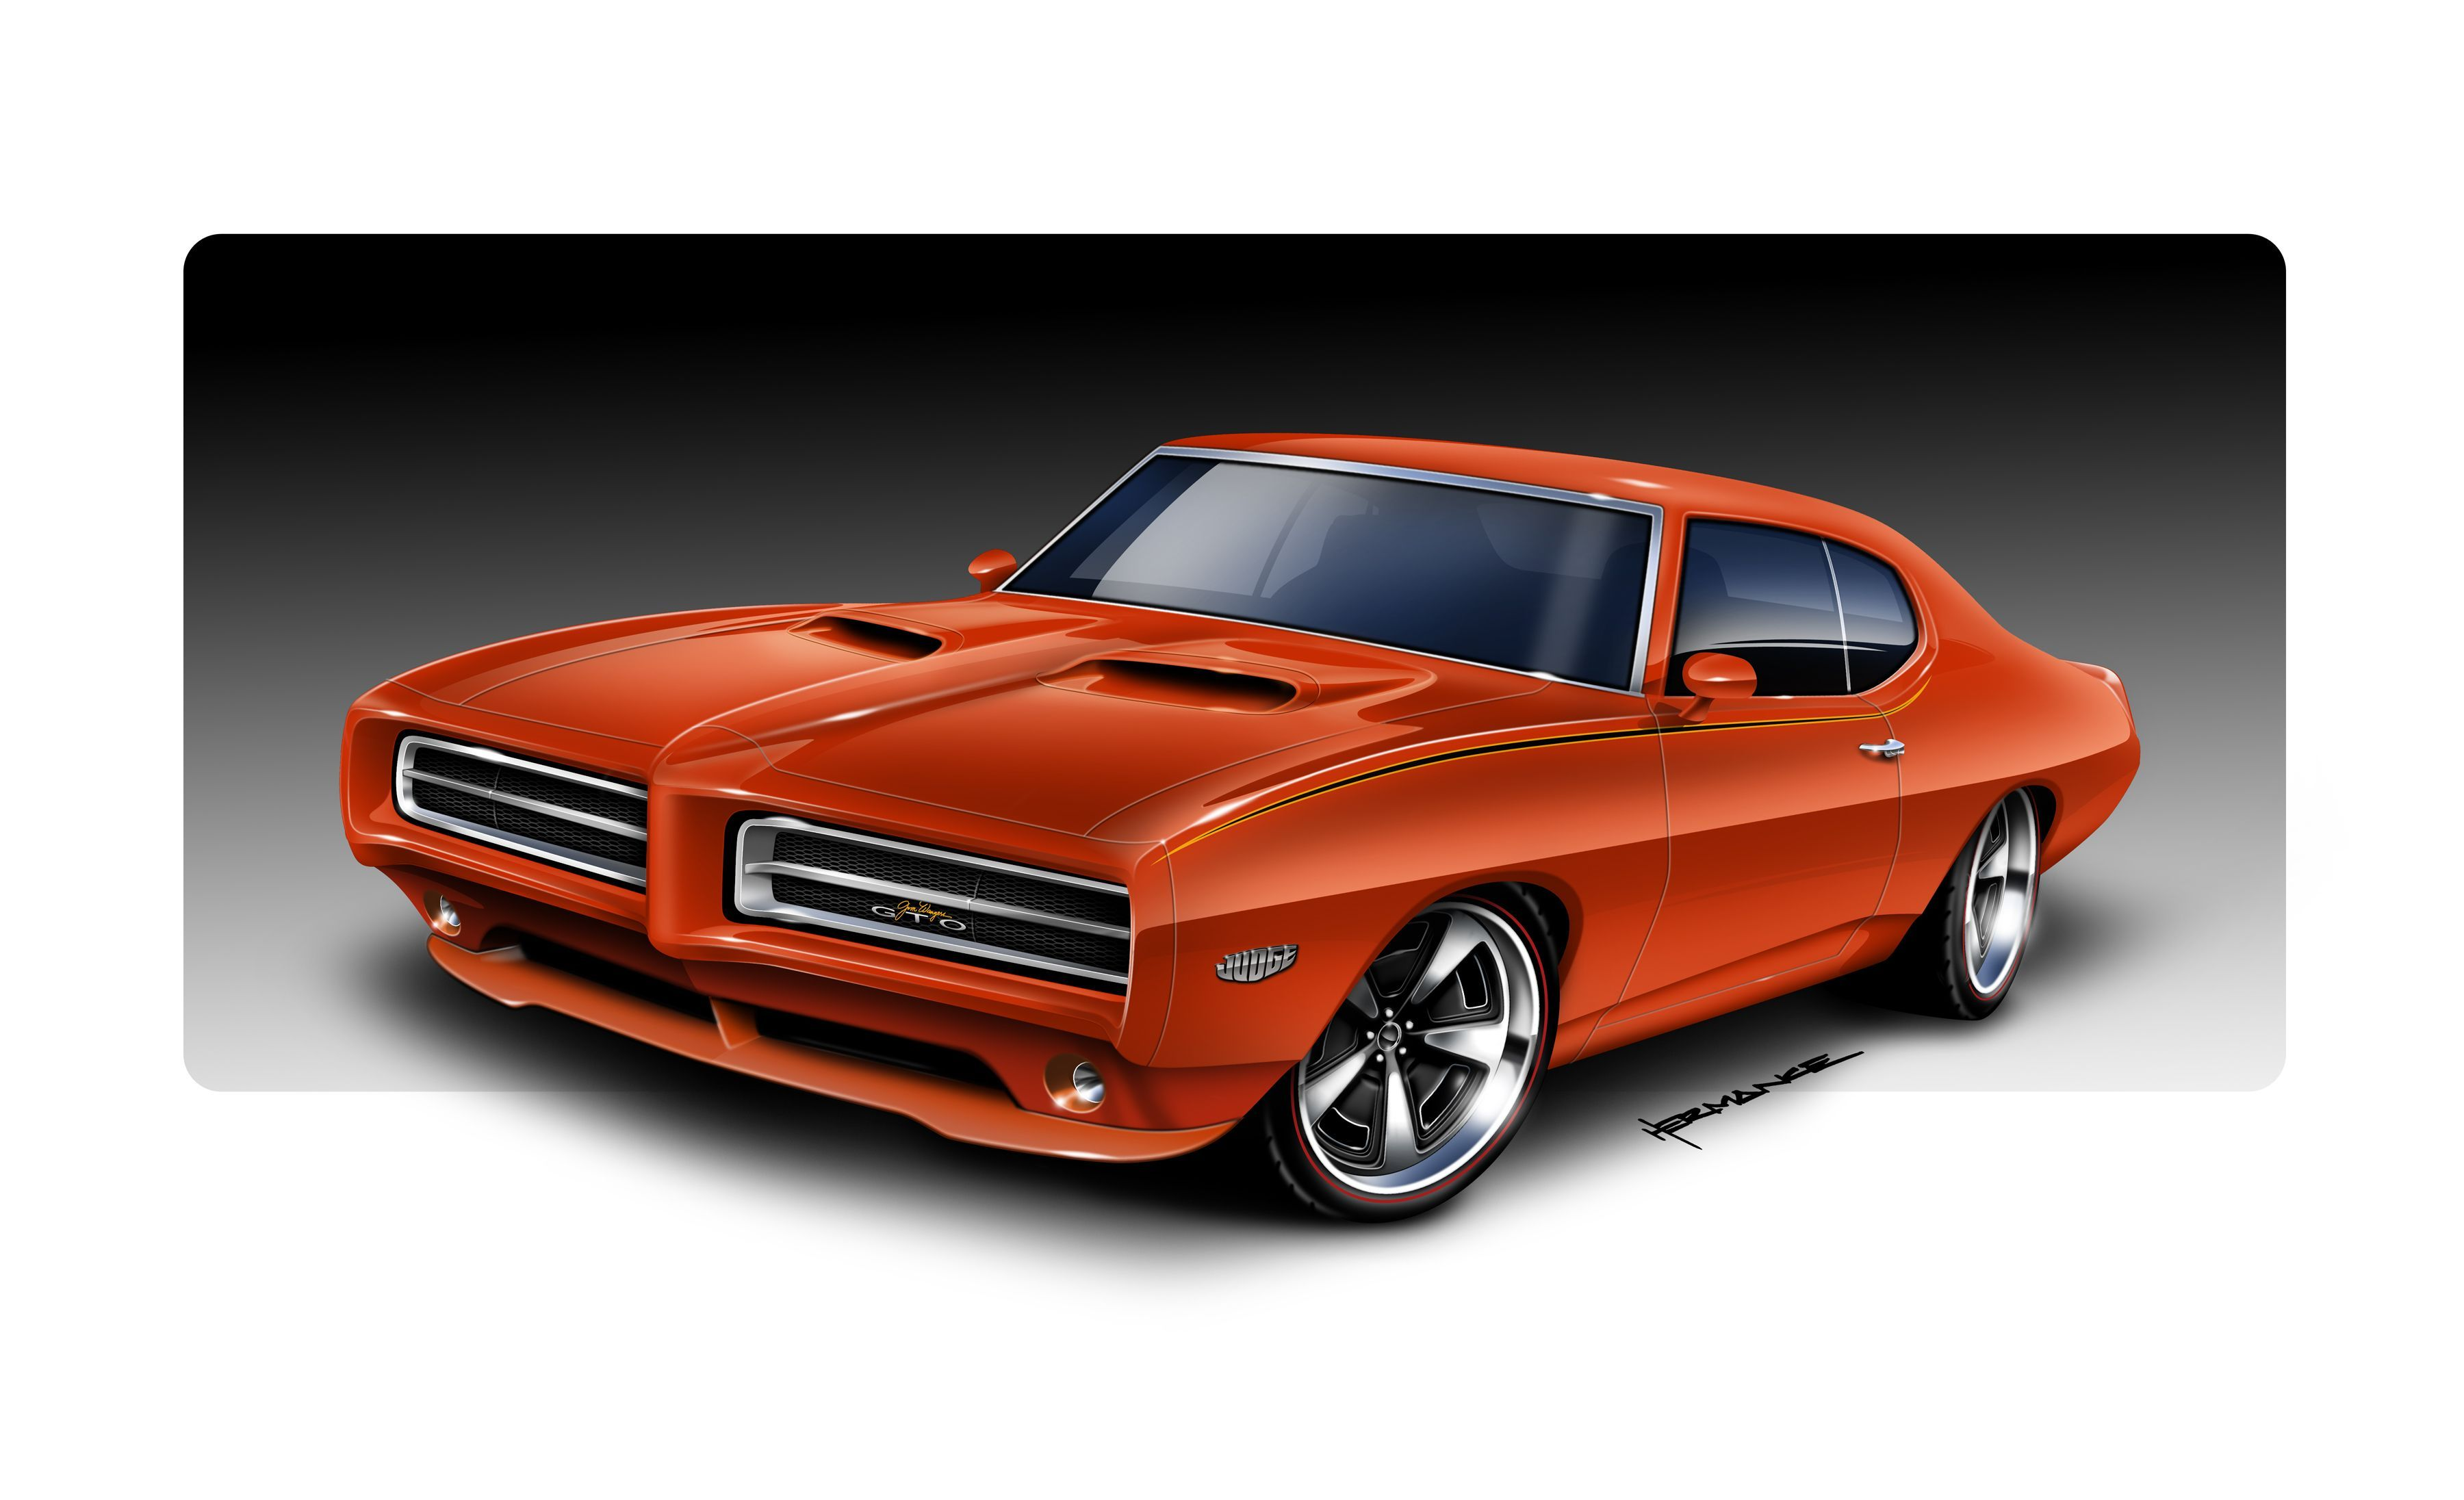 The Pontiac Gto Is A Muscle Car Legend Cruise Pinterest